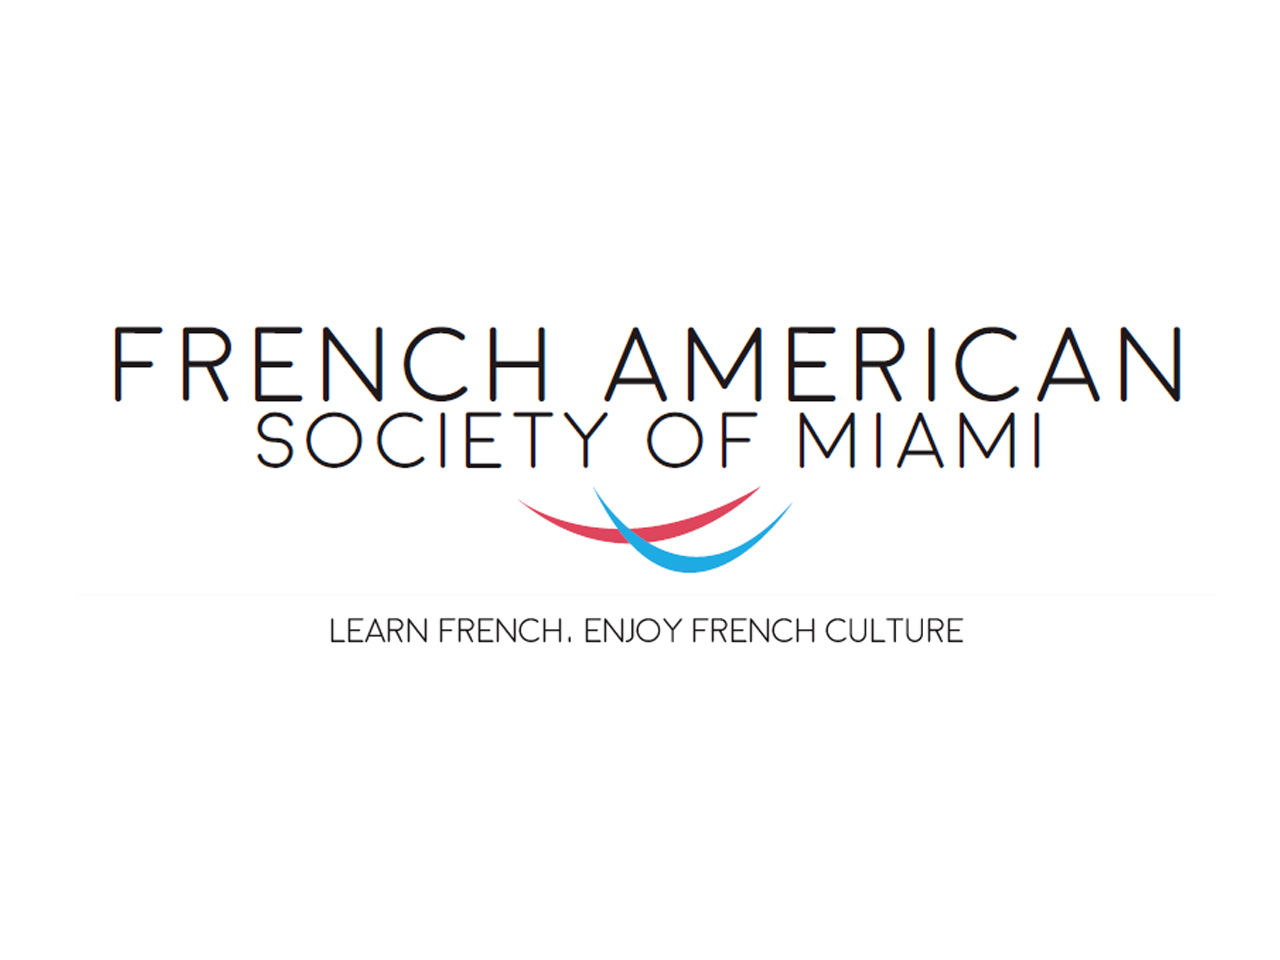 French American Society of Miami